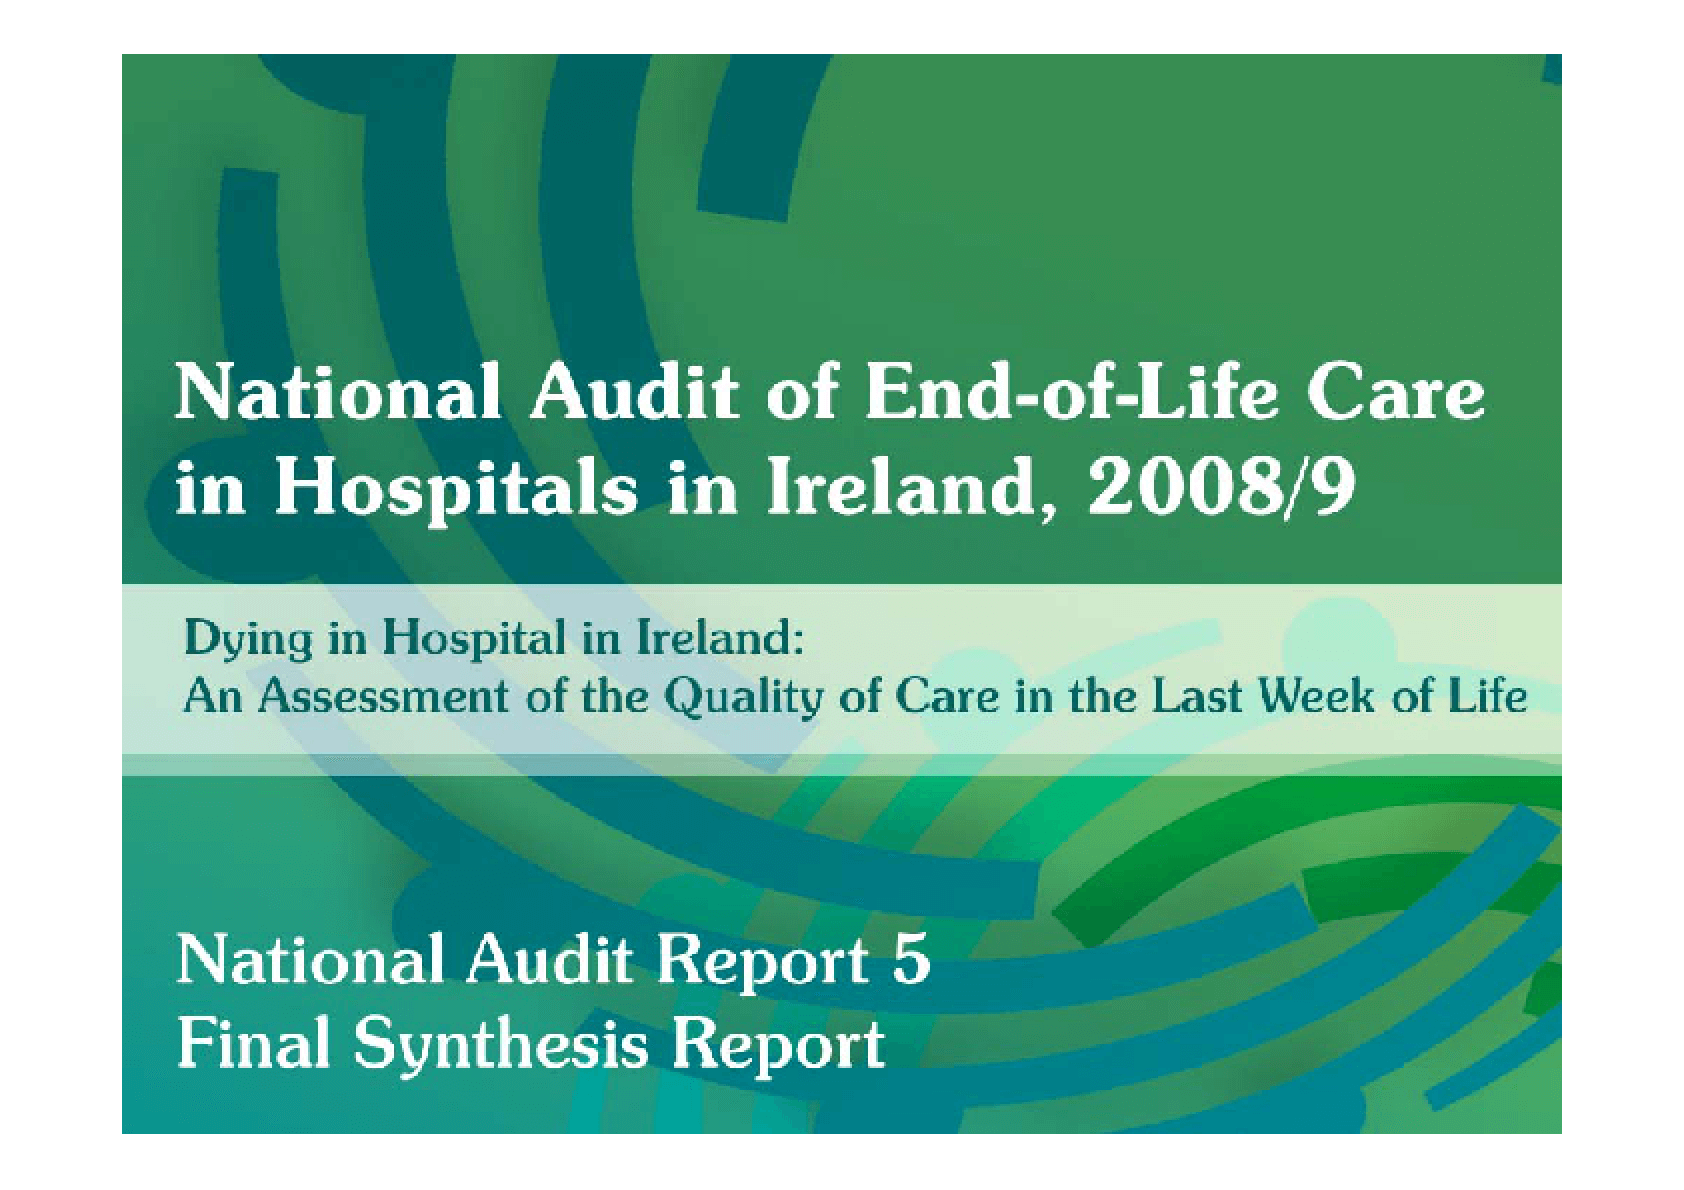 Dying in Hospital in Ireland: An Assessment of the Quality of Care in the Last Week of Life, Final Synthesis Report